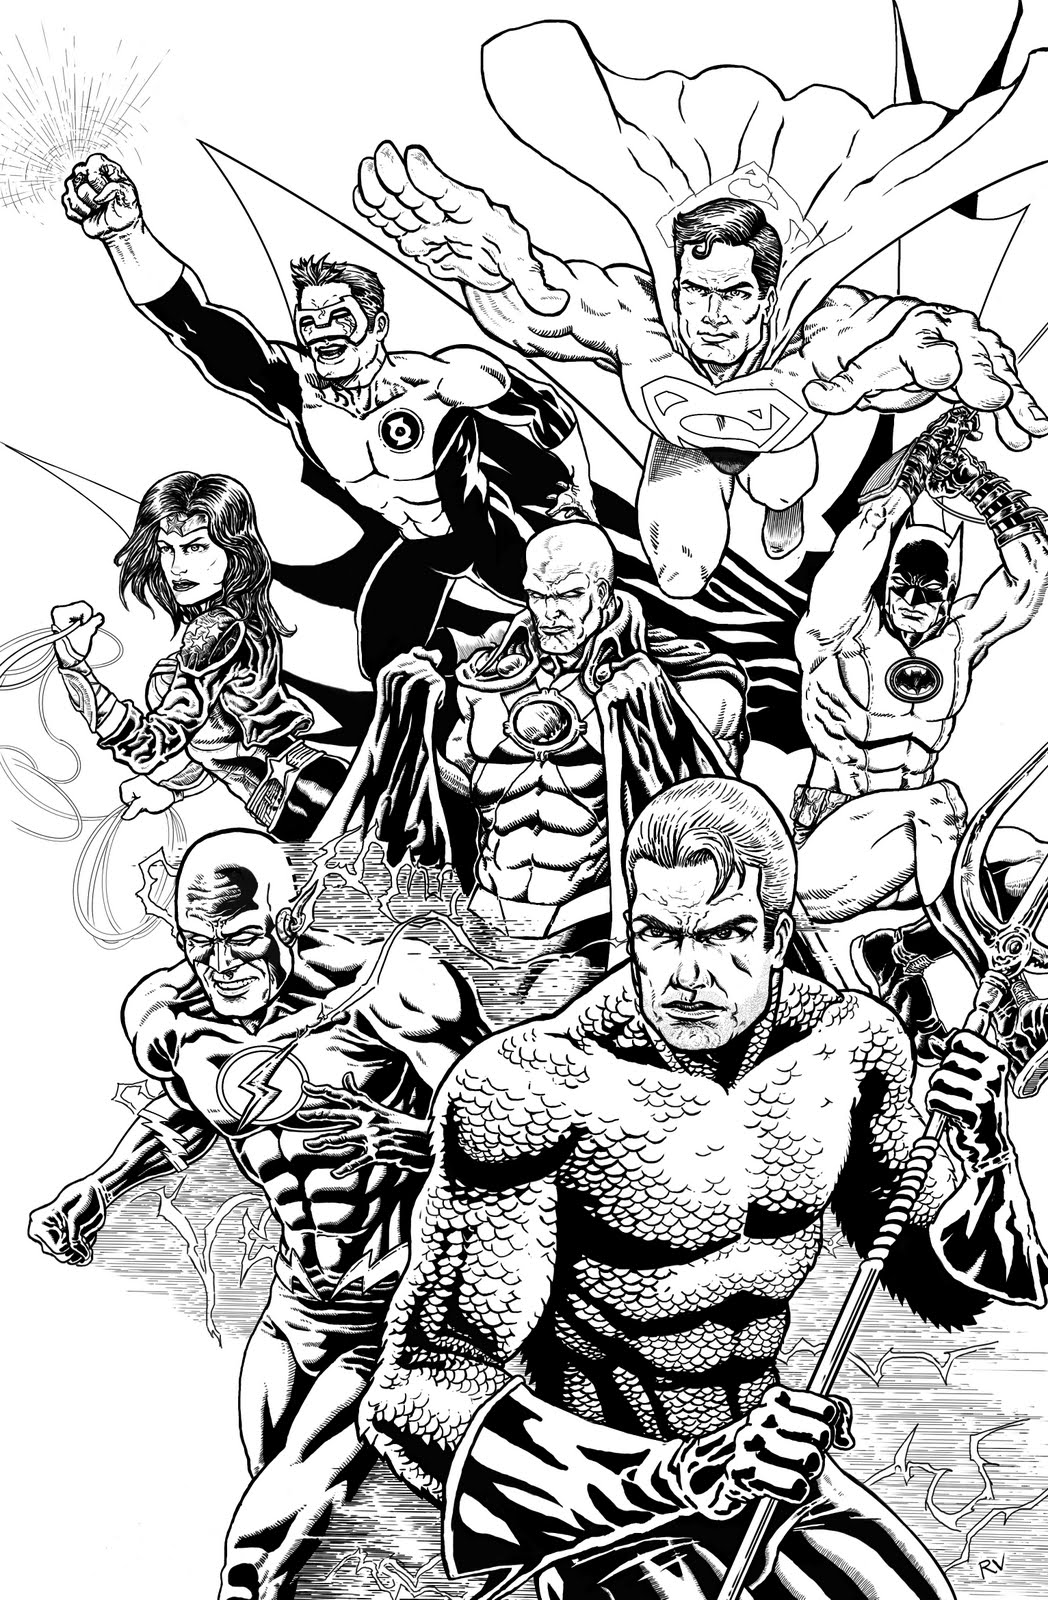 New cool meat january 2011 for Justice league printable coloring pages